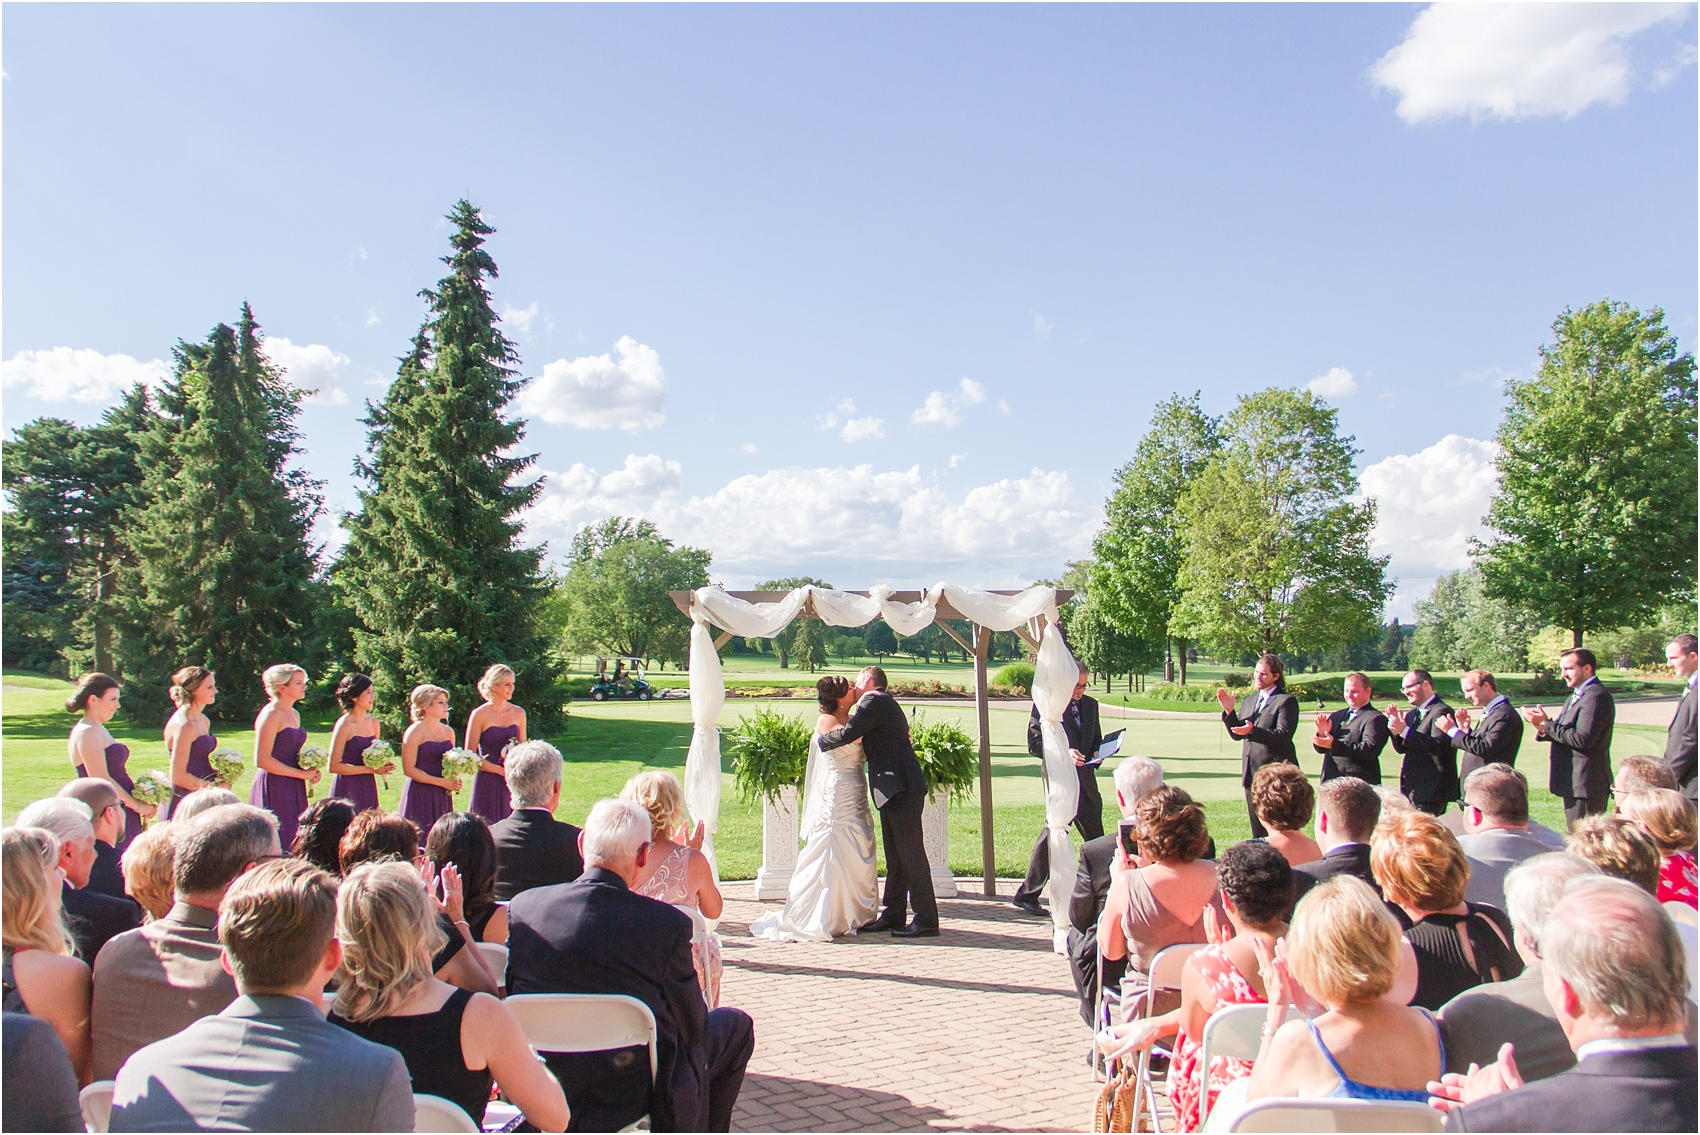 classic-wedding-photos-at-great-oaks-country-club-in-rochester-hills-mi-by-courtney-carolyn-photography_0084.jpg